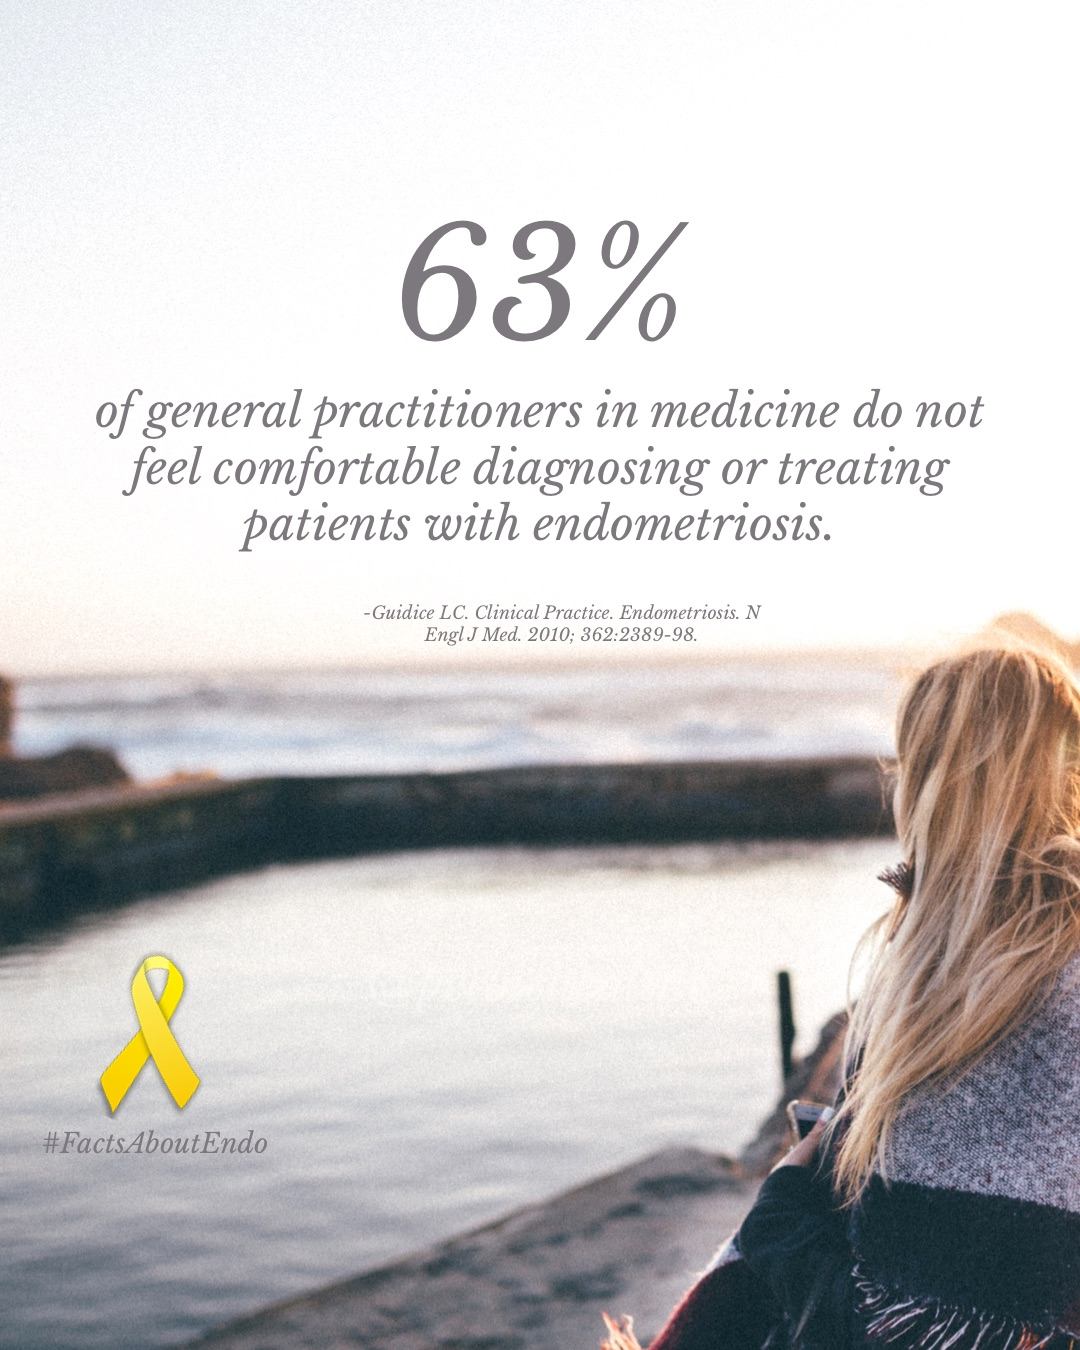 About 63% of general practitioners do not feel comfortable diagnosing and treating patients with endometriosis.JPG